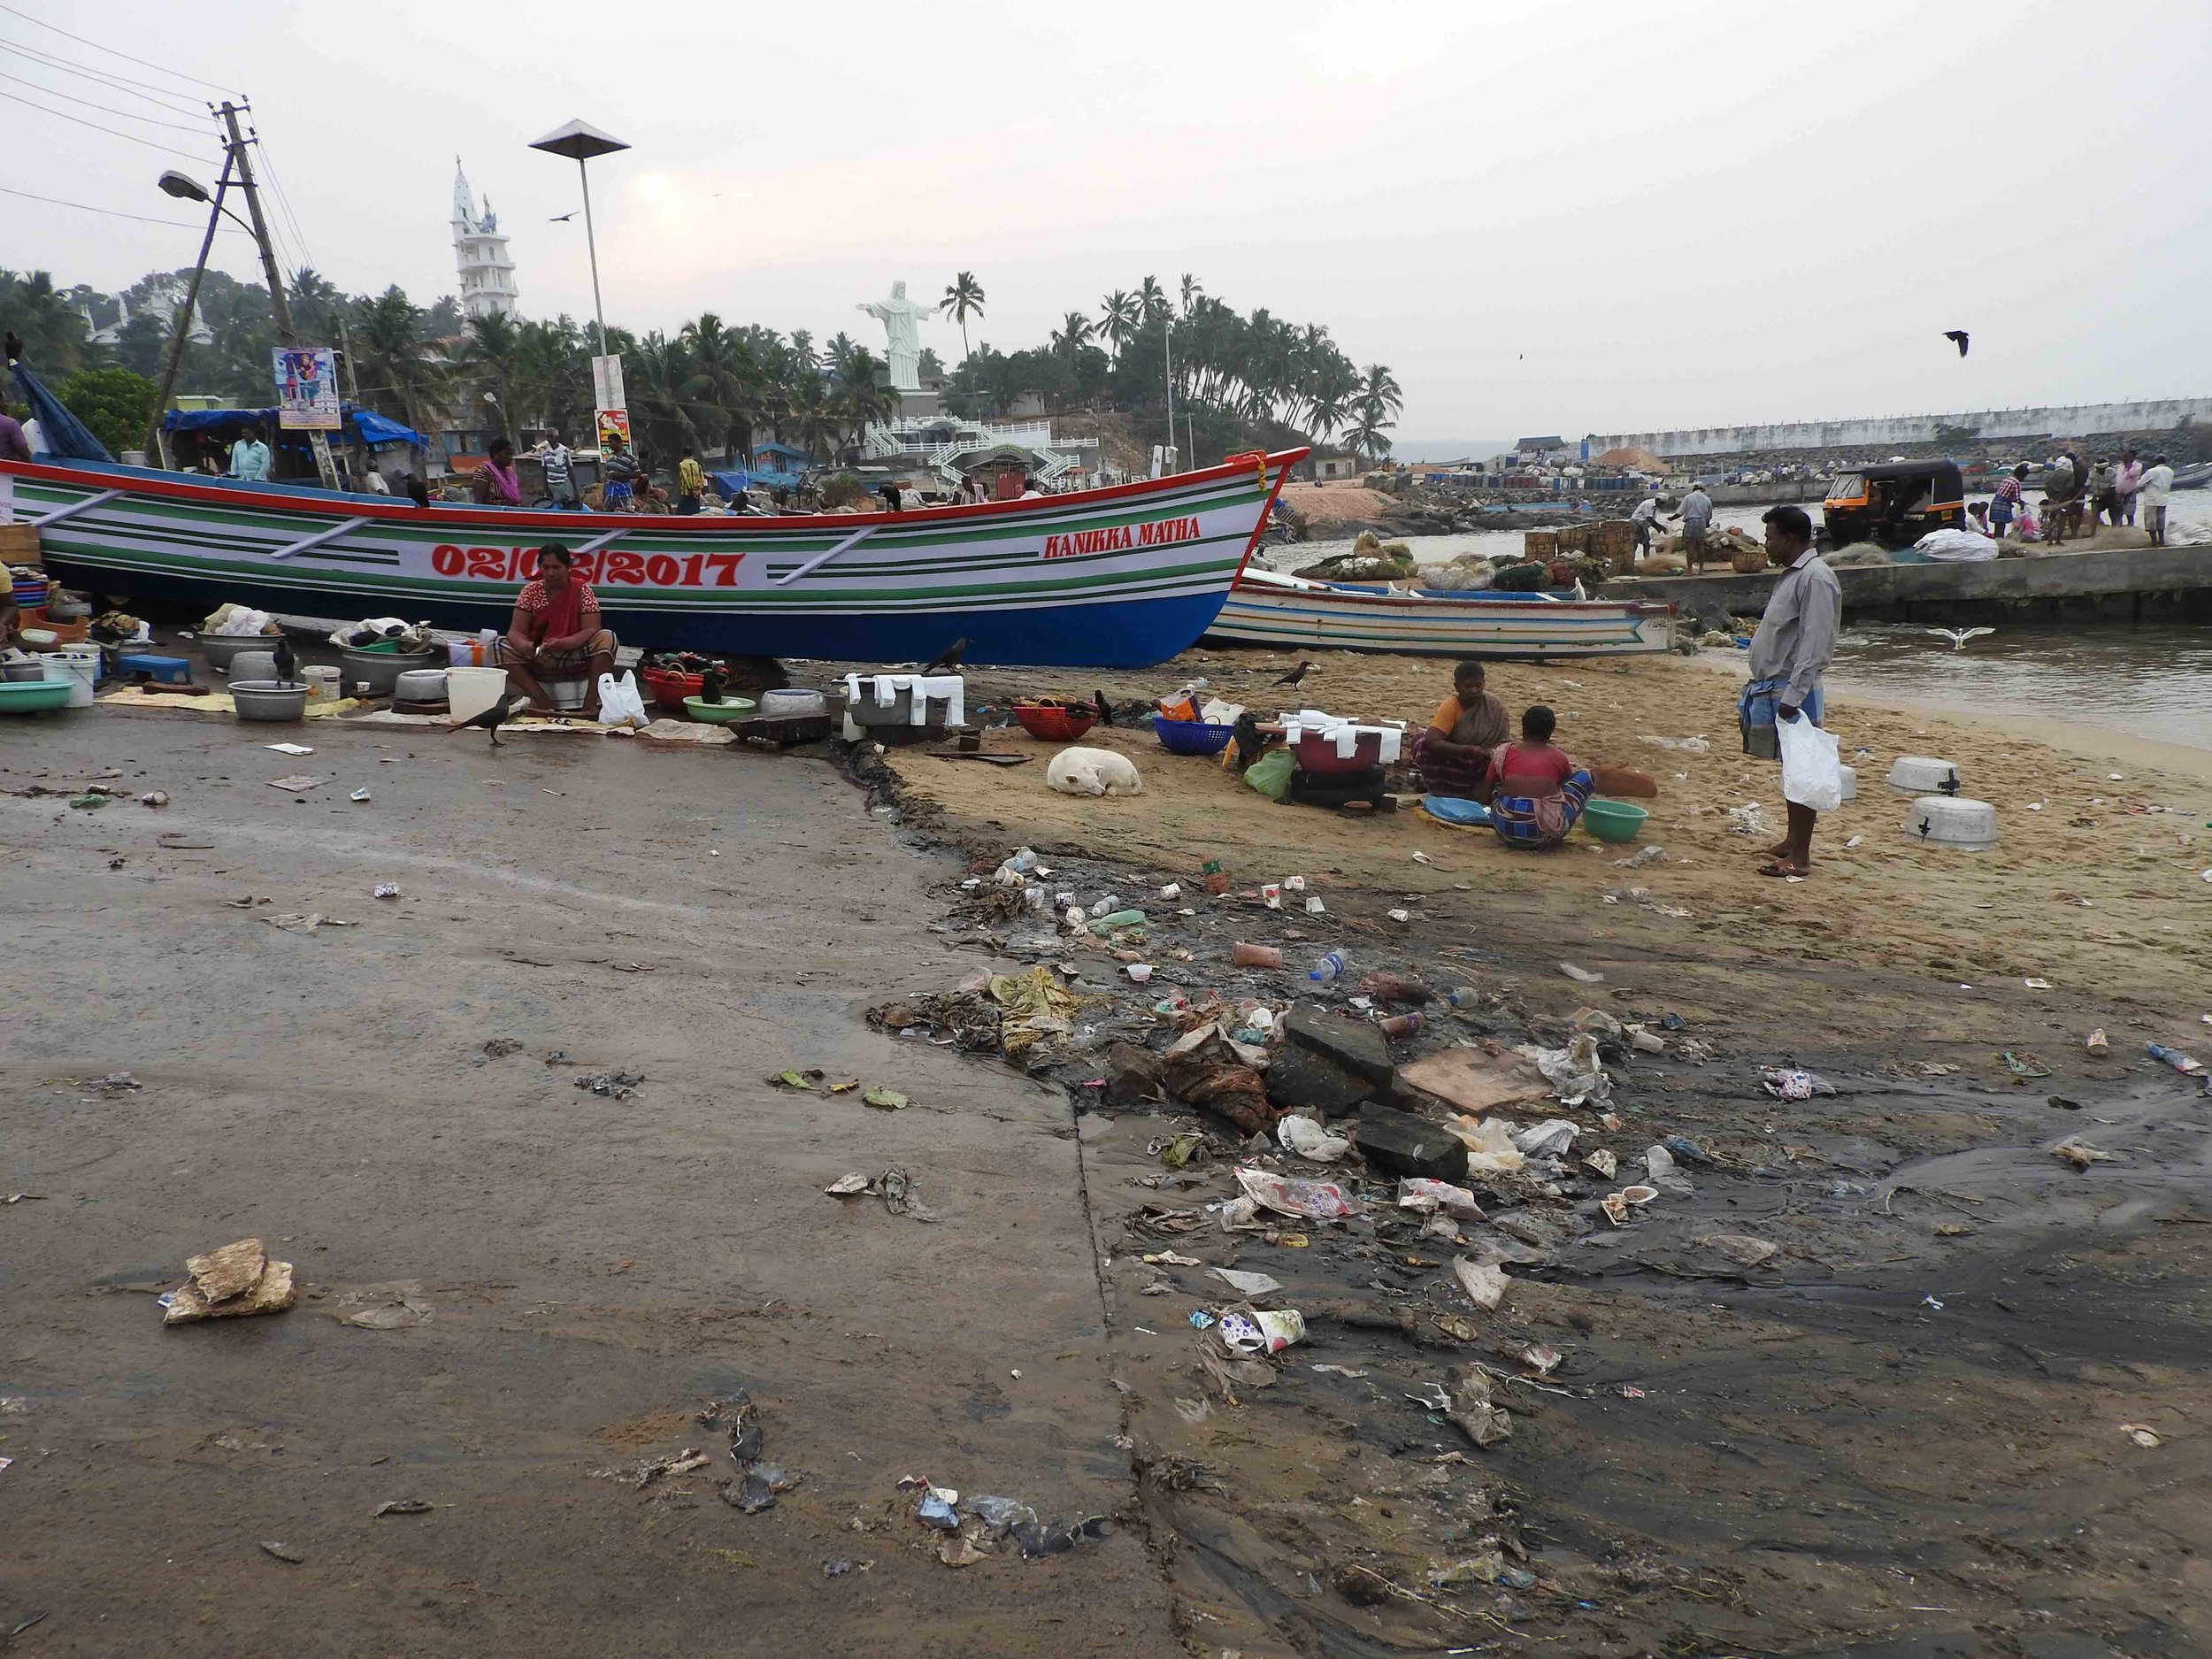 Pressures of overfishing, increasing industrialisation and rampant marine pollution, as seen above, compound the problems facing marine ecosystems in Vizhinjam and surrounds and the local community who rely on them for survival.